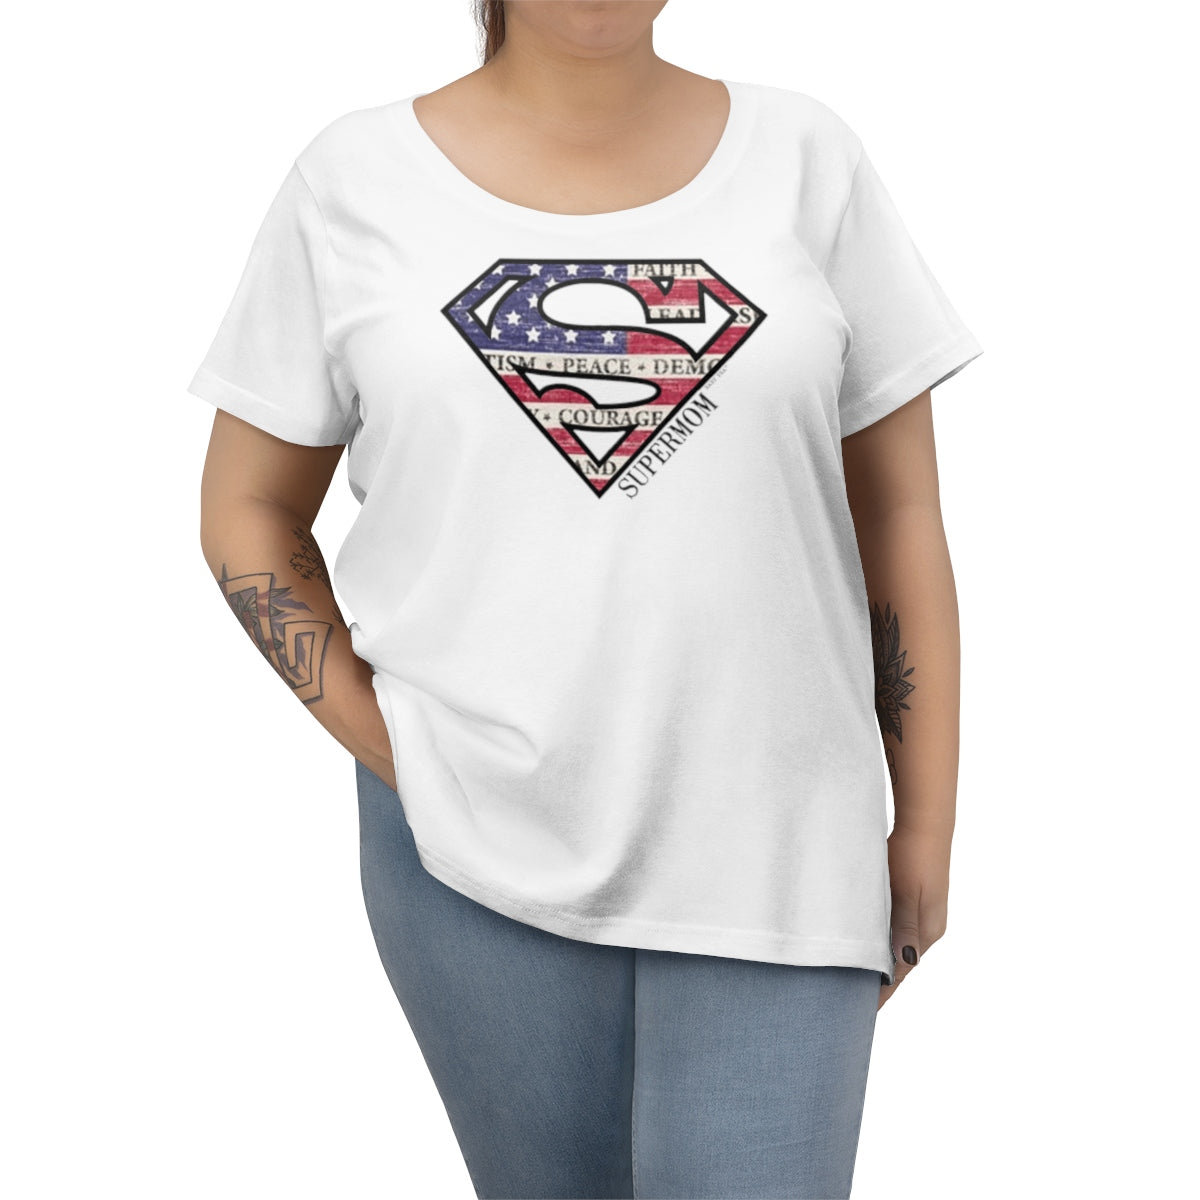 Supermom | Women's Plus Size Curvy Tee | 6 Colors - Baby Pea Clothing Fashion for Babies & Kids of all ages